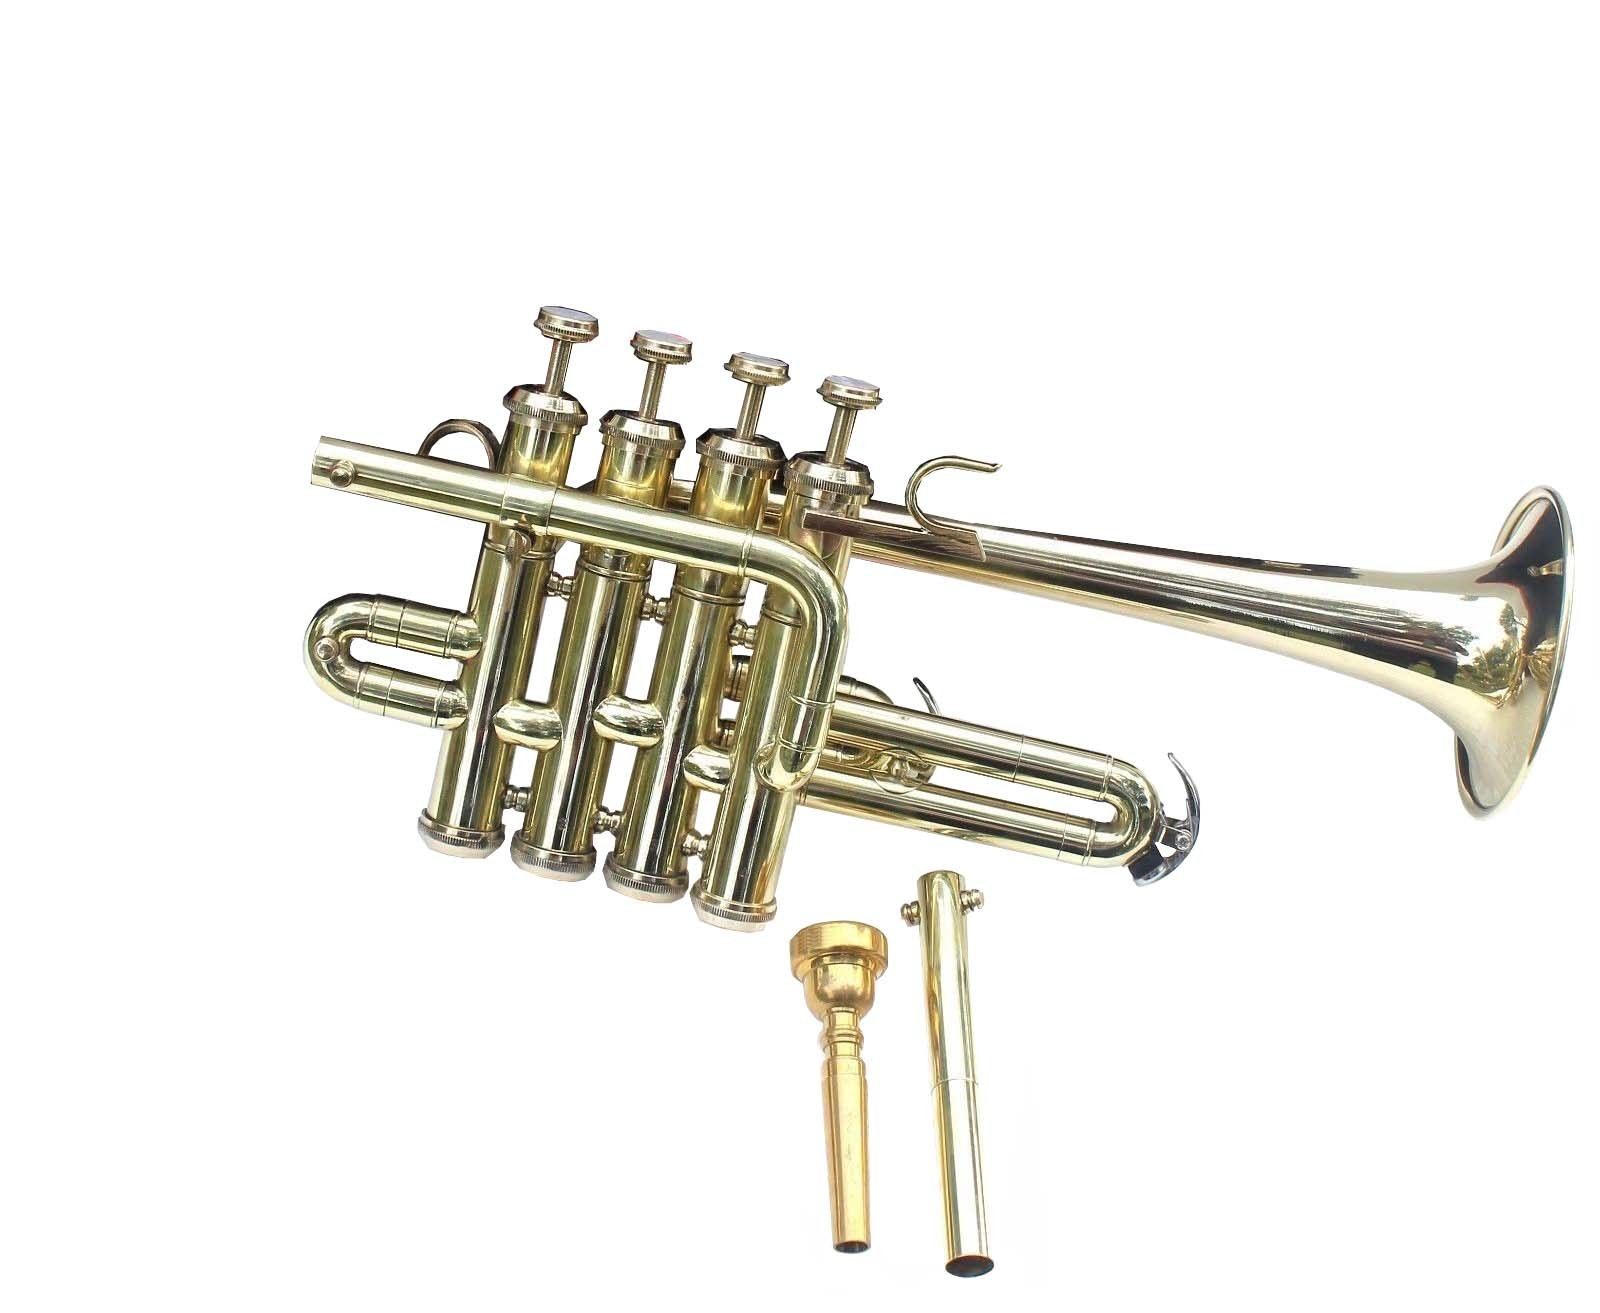 Top Quality Picollo BB Pitch Piccolo Trumpet Brass Finish With Mouth Piece